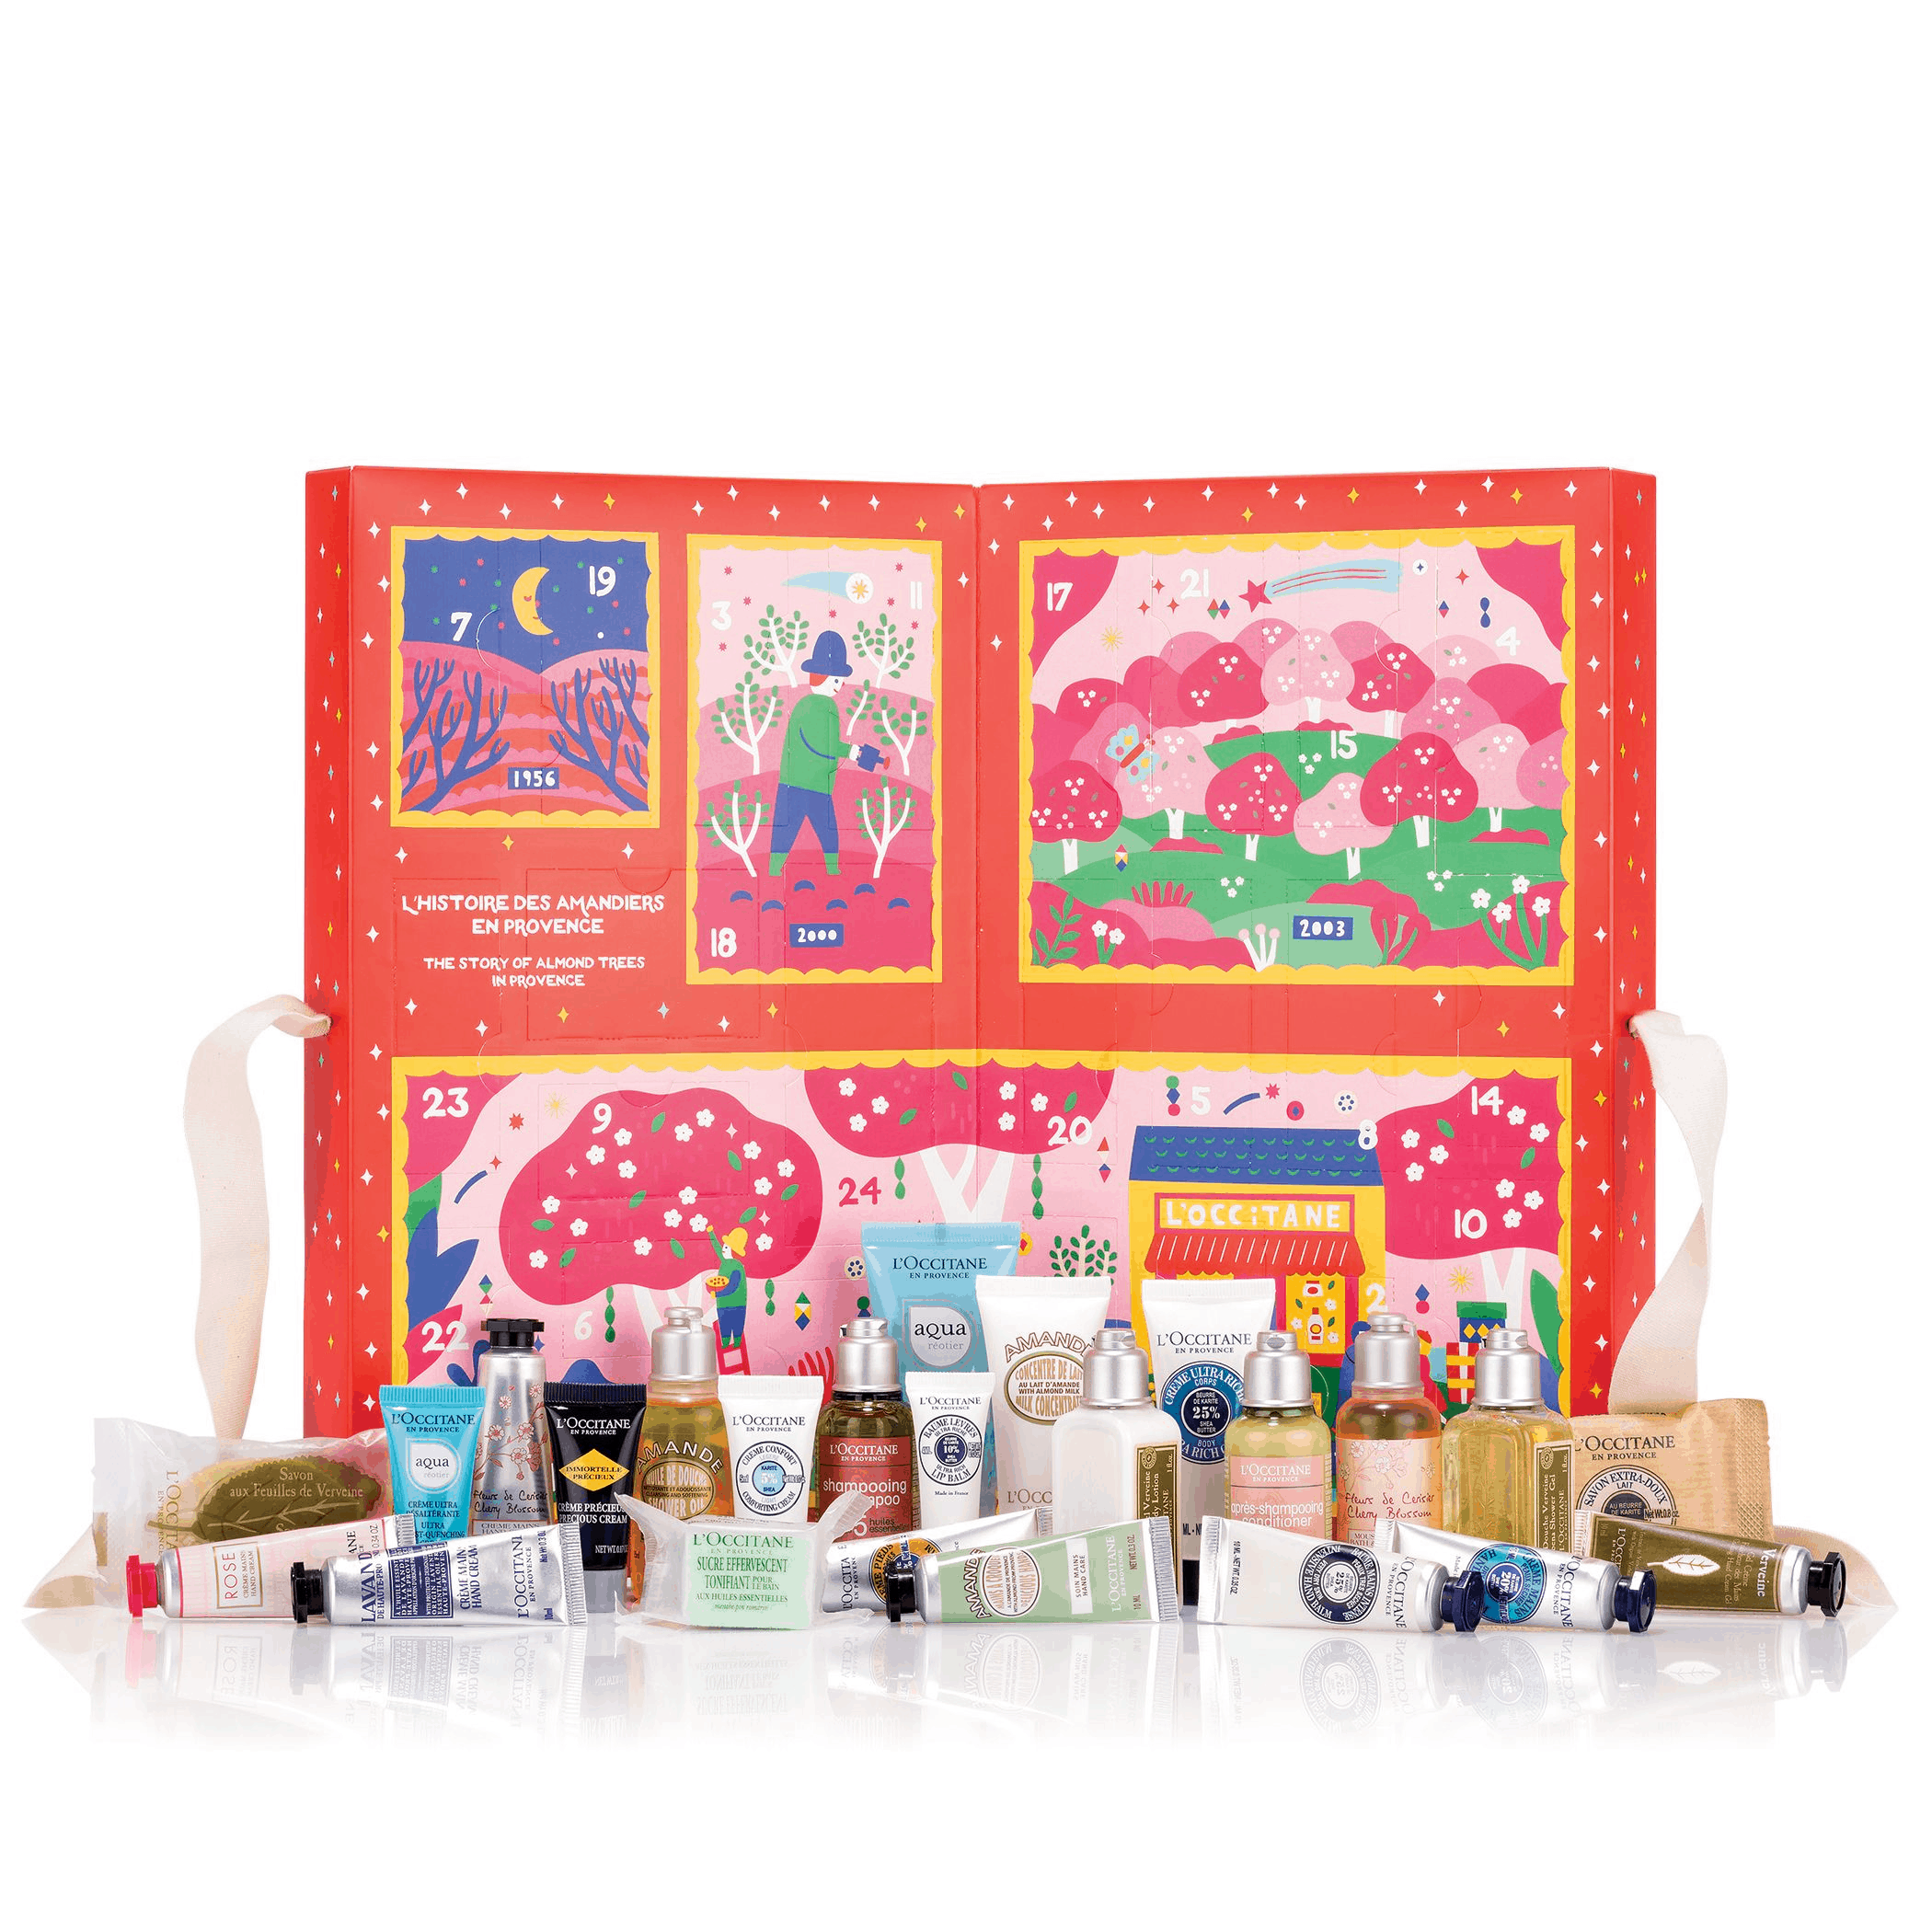 L'Occitane 2019 Signature Beauty Advent Calendar Available Now + Full Spoilers!